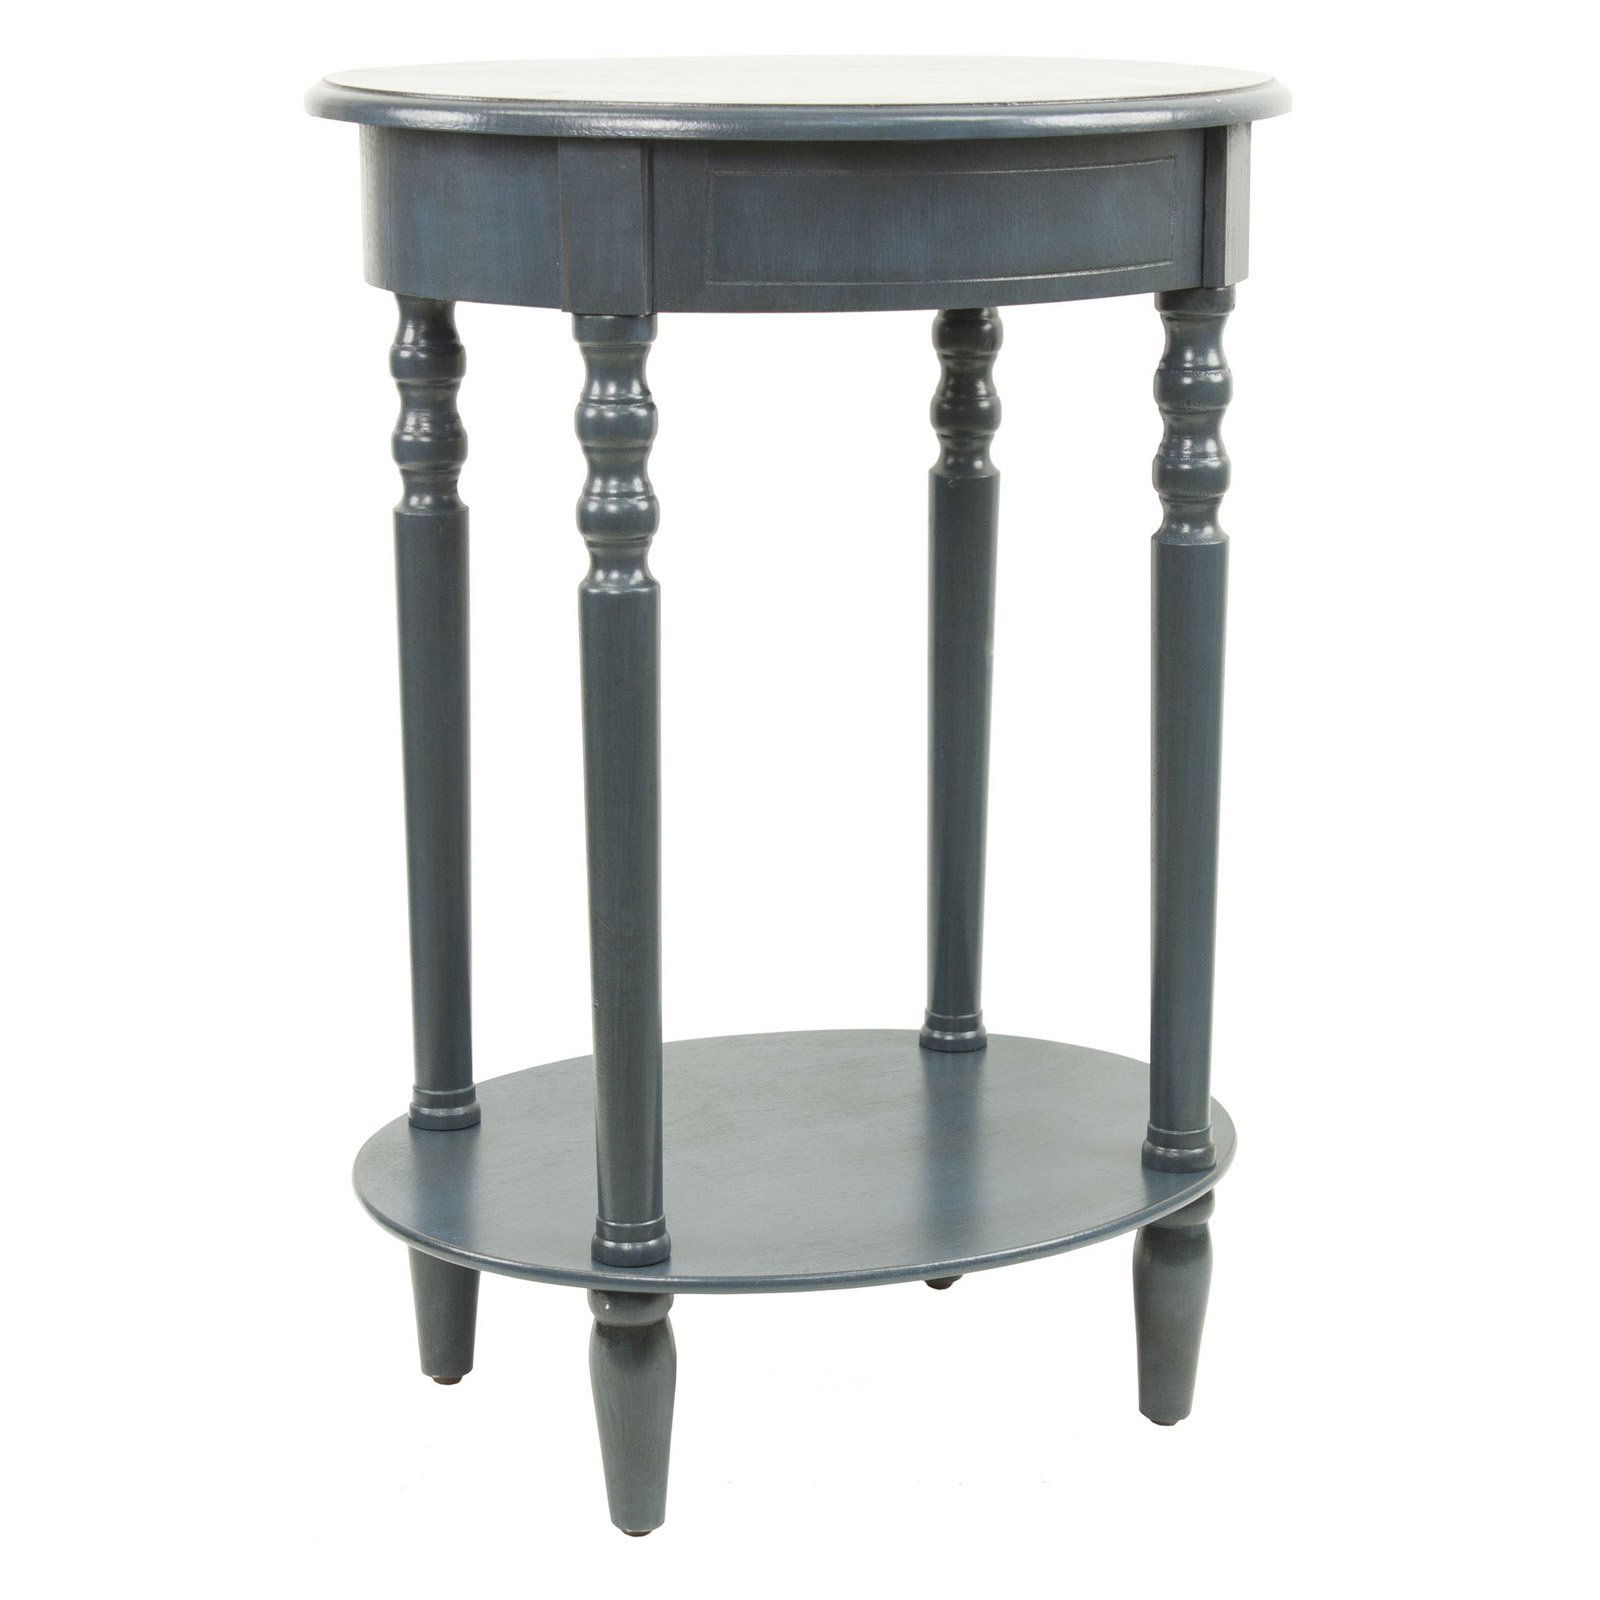 Simplify Oval Accent Table by JIMCO LAMP CO.